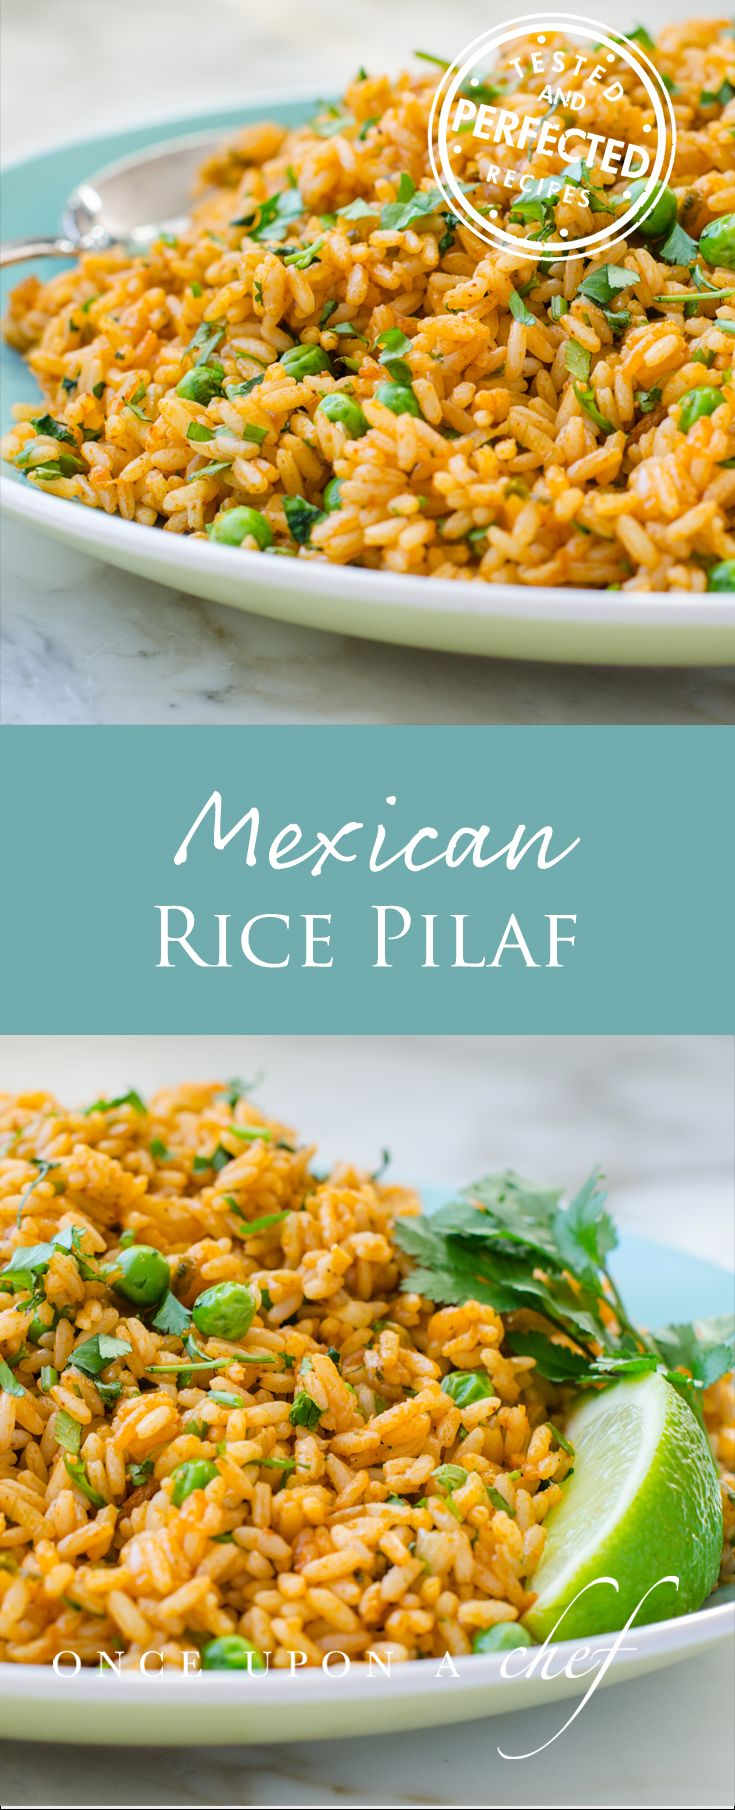 Best 25 mexican entrees ideas on pinterest spanish rice recipe best 25 mexican entrees ideas on pinterest spanish rice recipe vegetarian spanish rice seasoning and spanish sides forumfinder Images